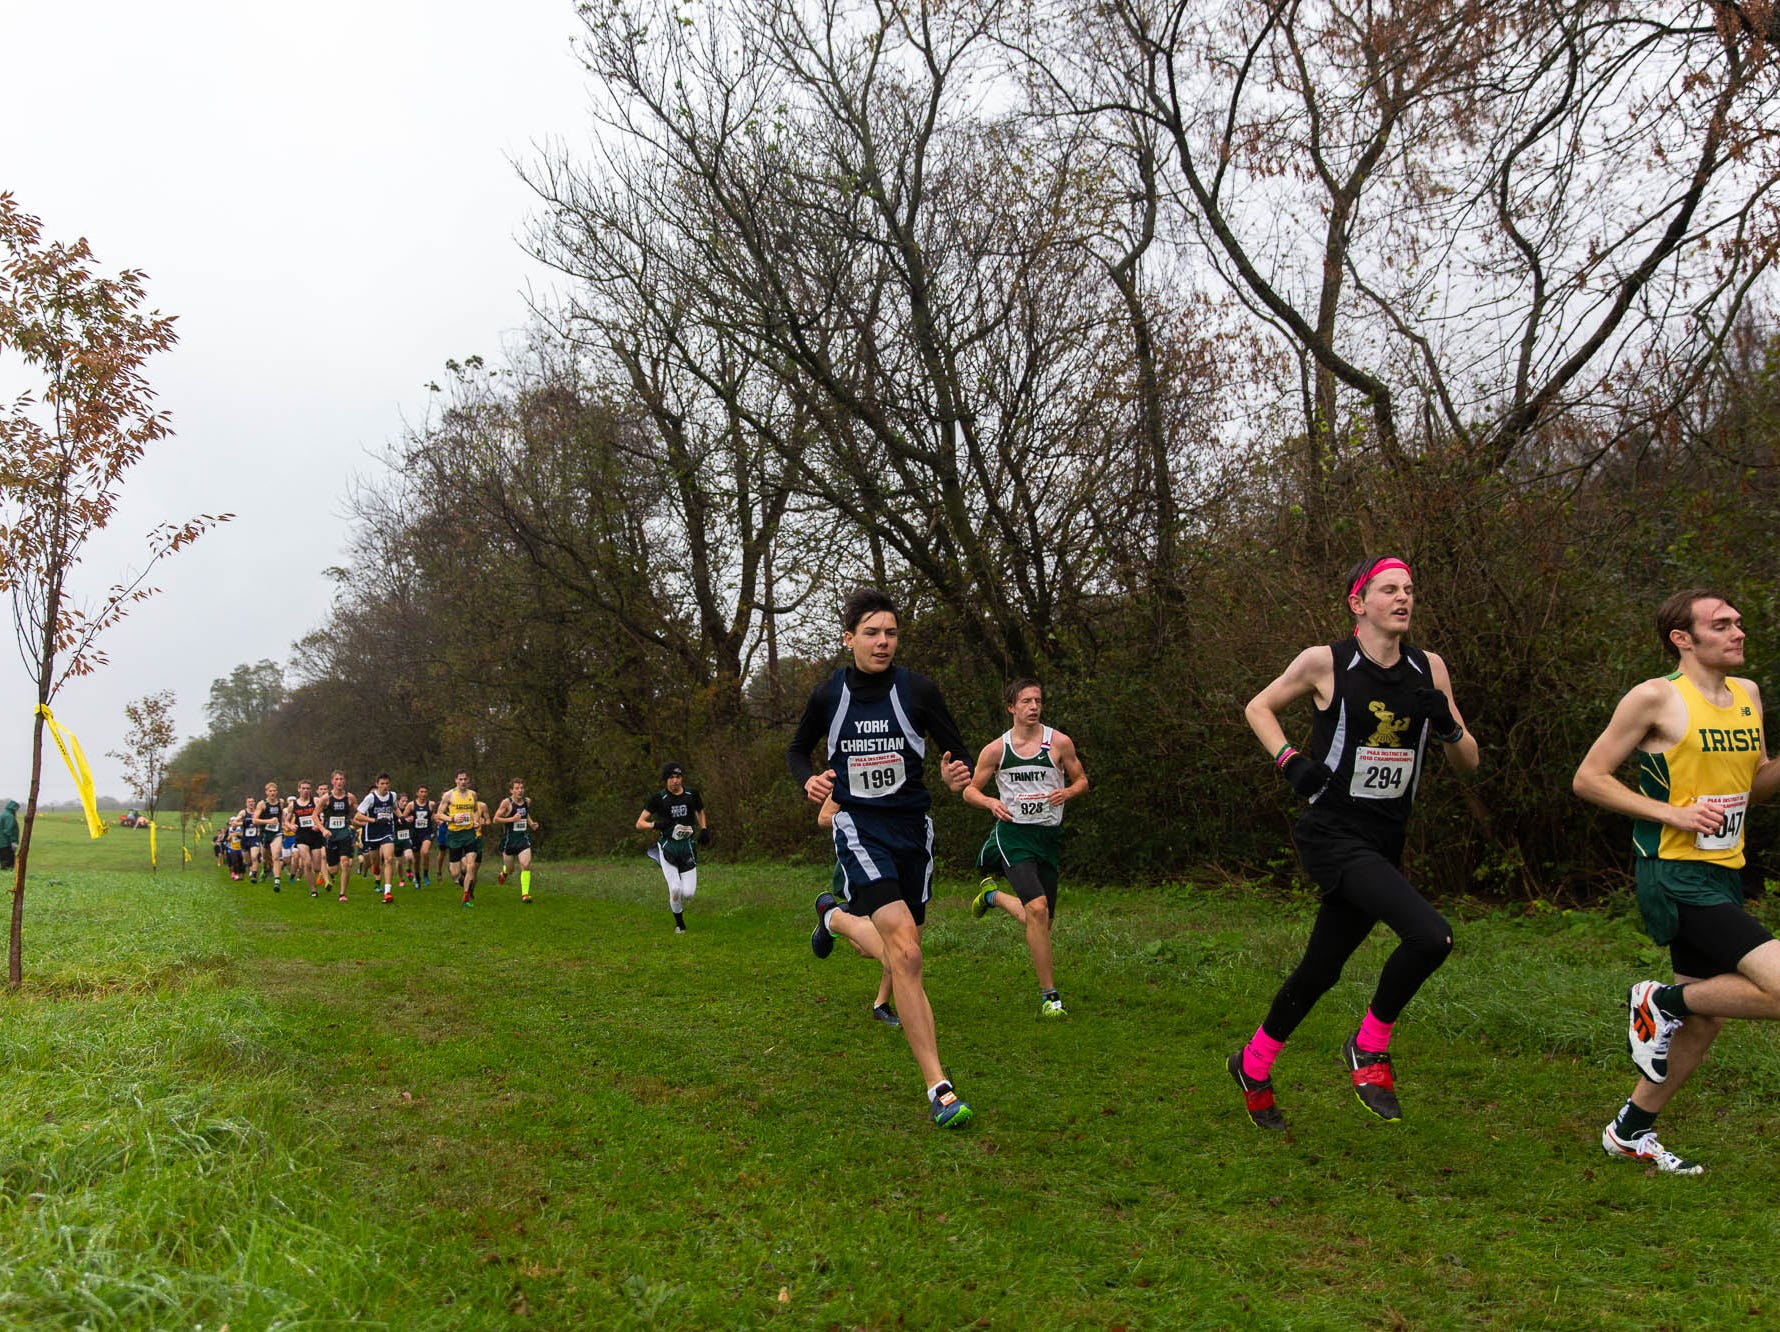 York Christian's Eric Shelton (199), Delone Catholic's Gabe Hall (294), and York Catholic's Christian Gervasi (1047) race in the Boys A during the PIAA District III Cross Country Championship, Saturday, Oct. 27, 2018, at Big Spring High School in Newville.